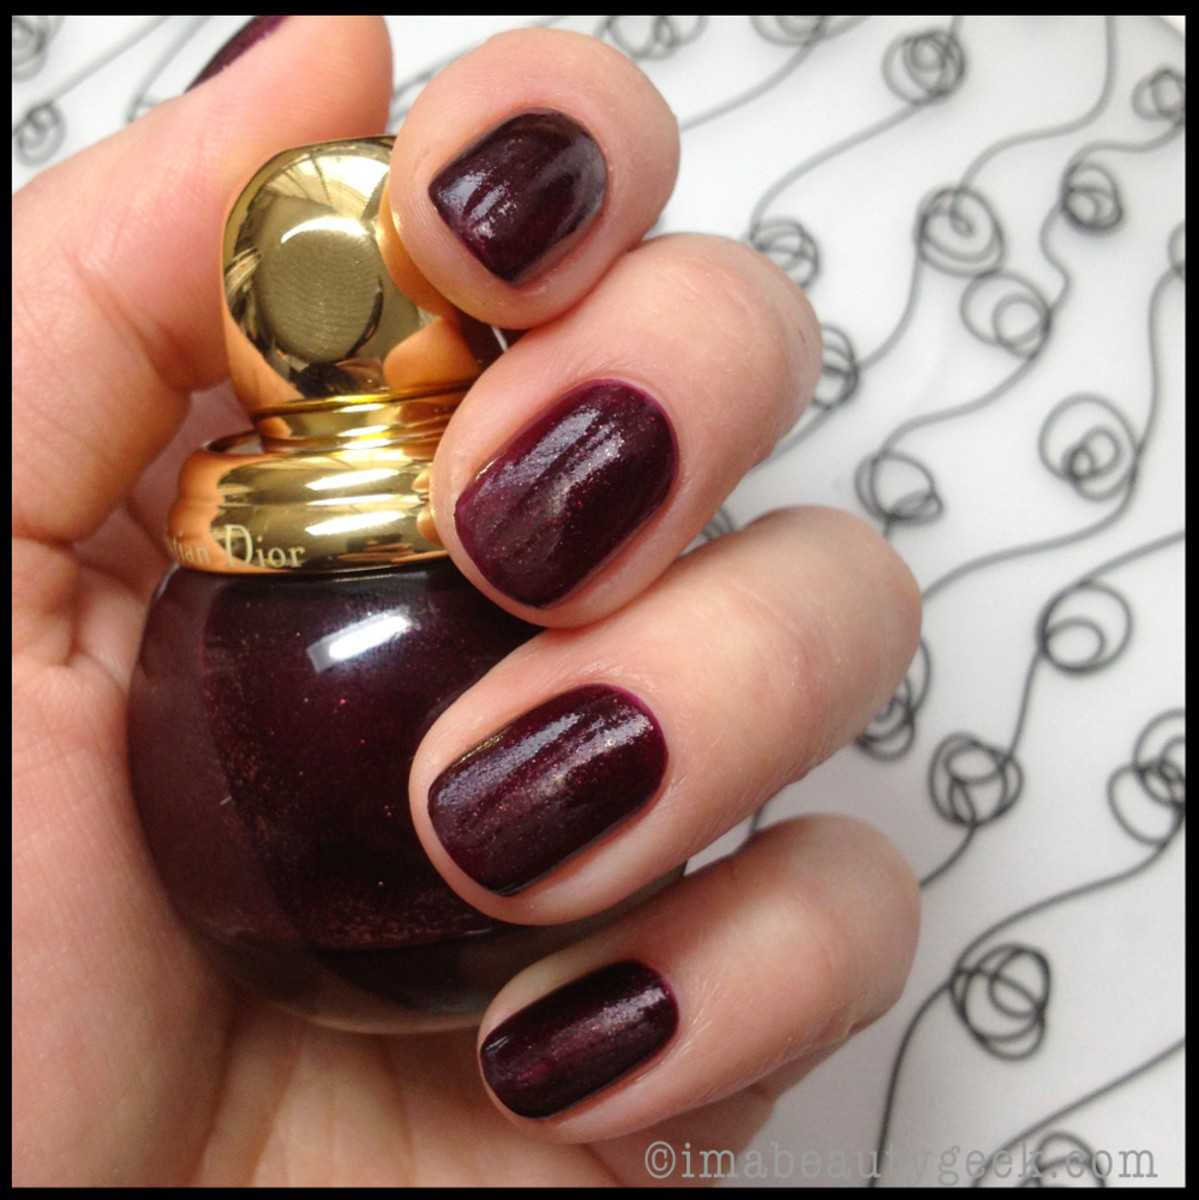 Dior Holiday 2013 Dior Diorific Vernis in Minuit 1